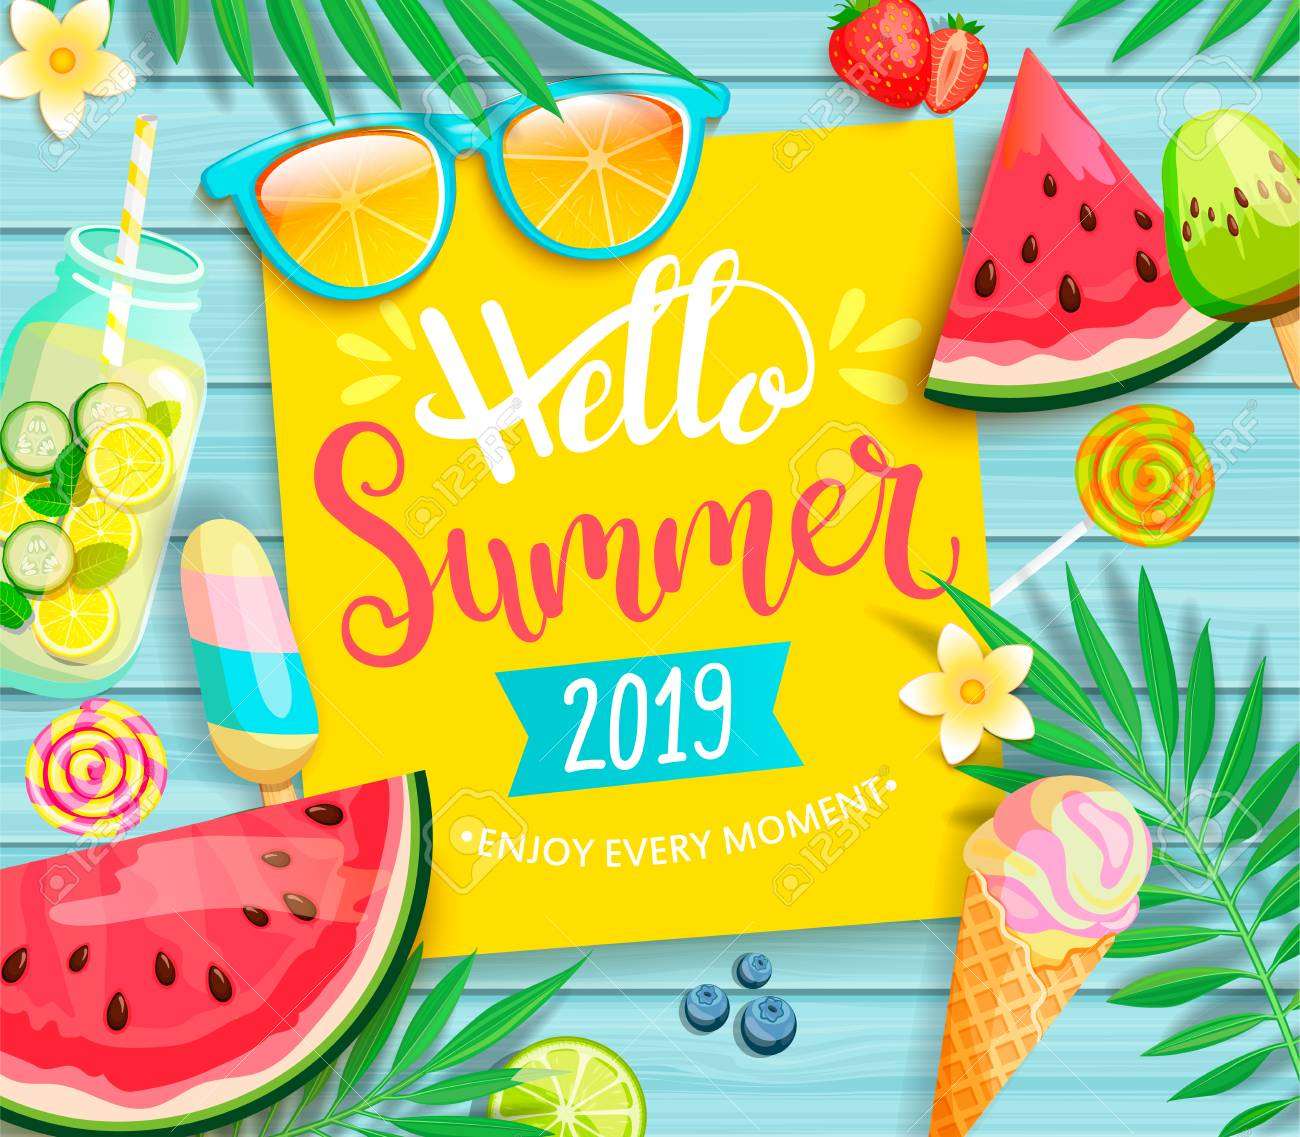 Hello summer 2019 yellow card or banner with handdrawn lettering on blue wooden background with watermelon, detox, ice, ice cream,sunglasses and candy, blueberry. Vector Illustration. - 116374609